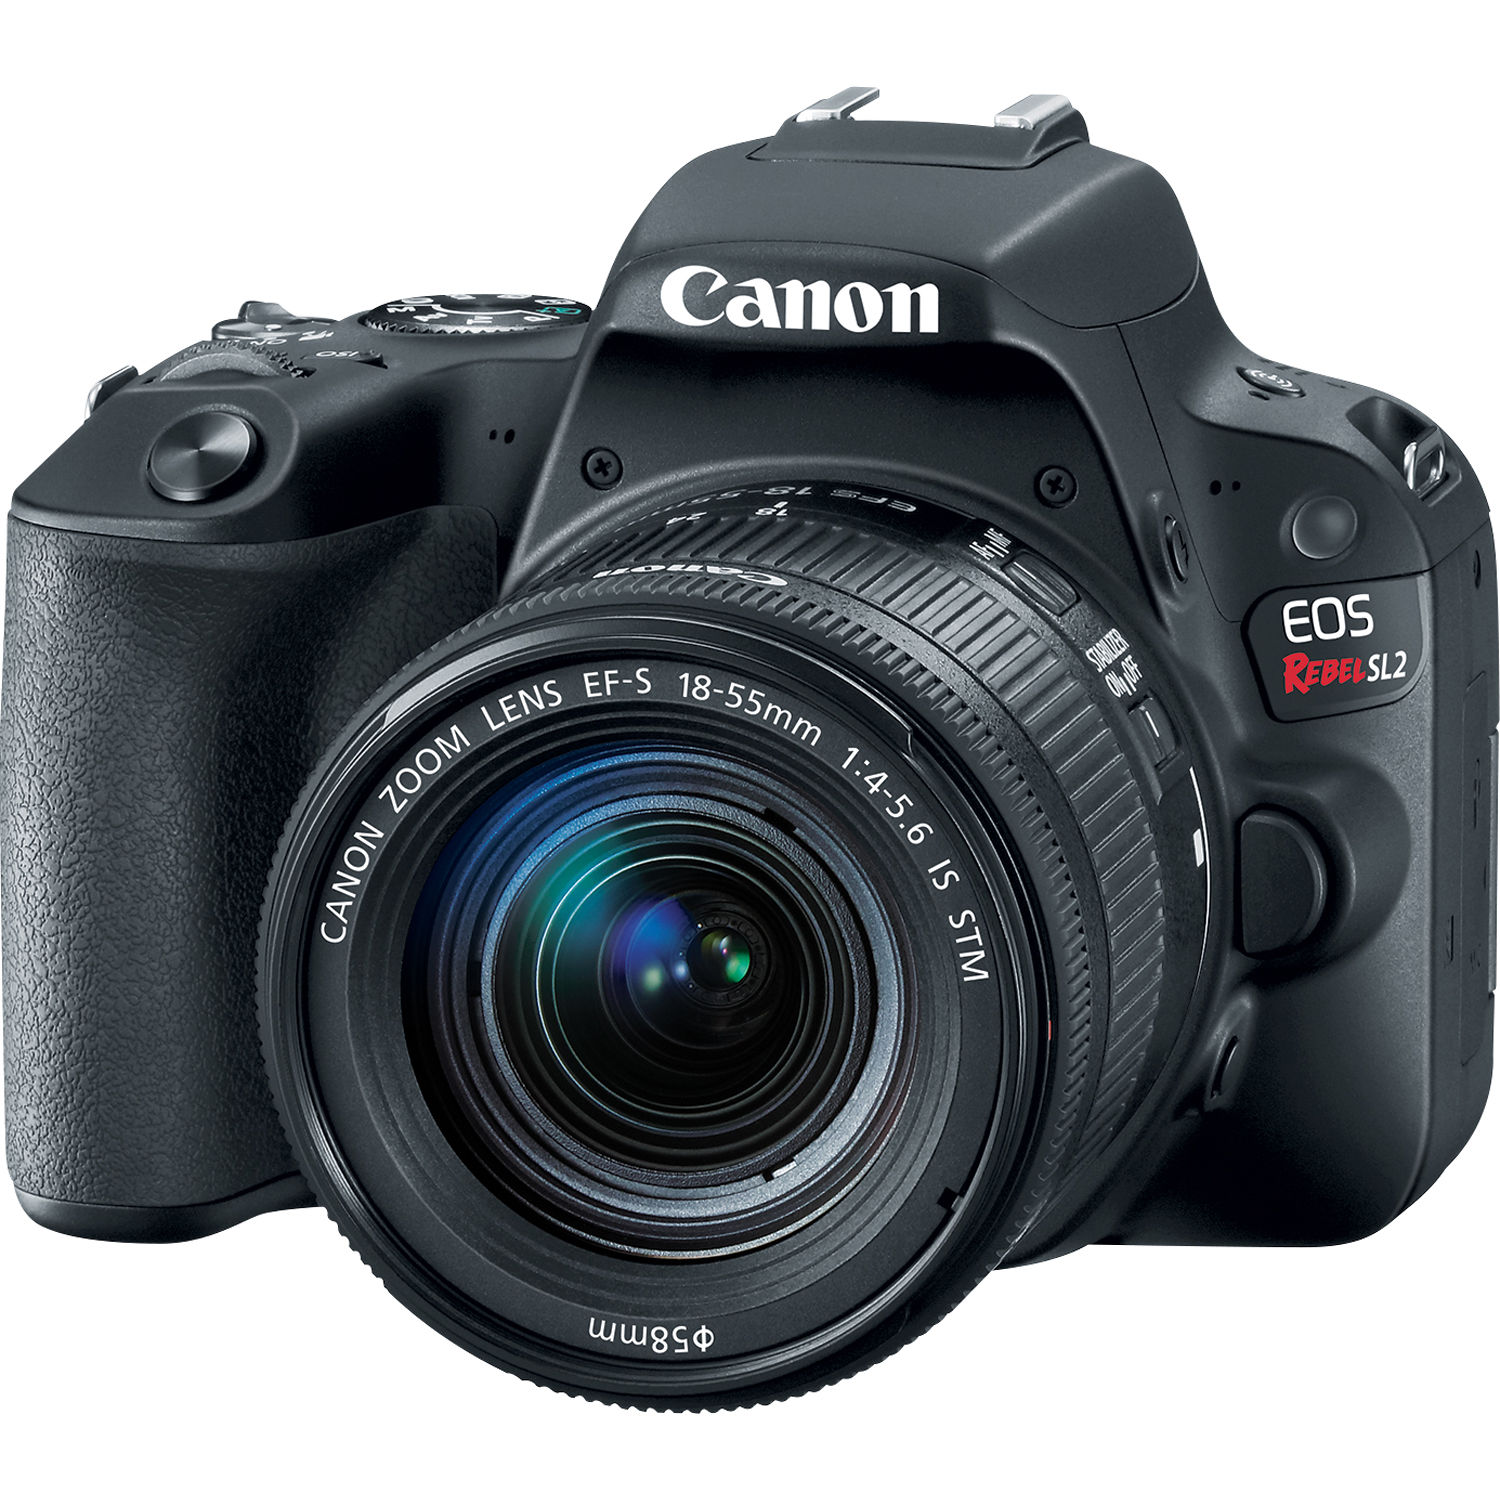 canon sl2 eos rebel dslr camera with 18 55mm lens sl2 black